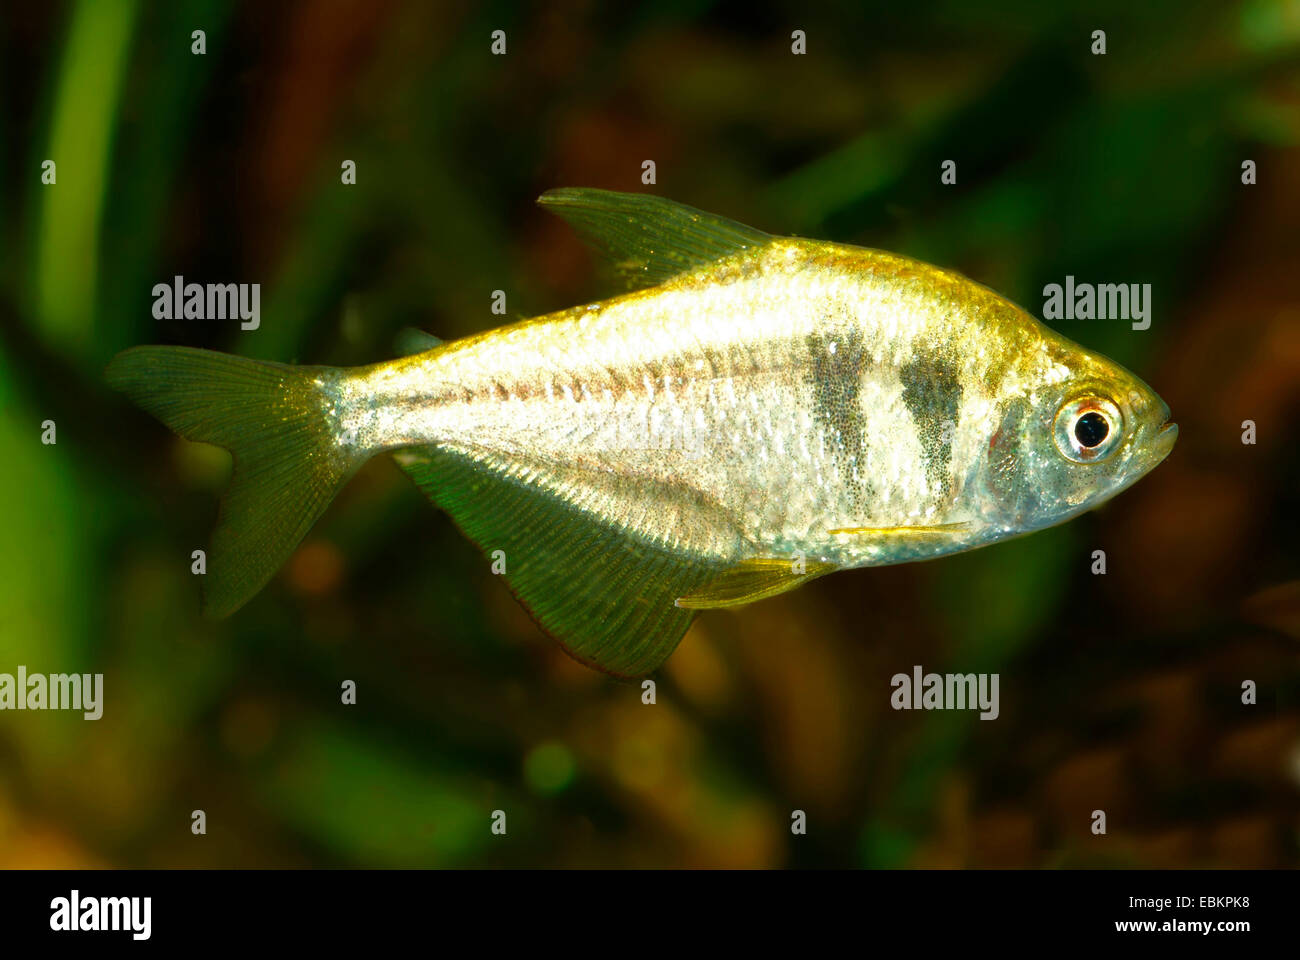 Fish names in alphabetical order - Page 2 - Forum Games Yellow Tetra Fish